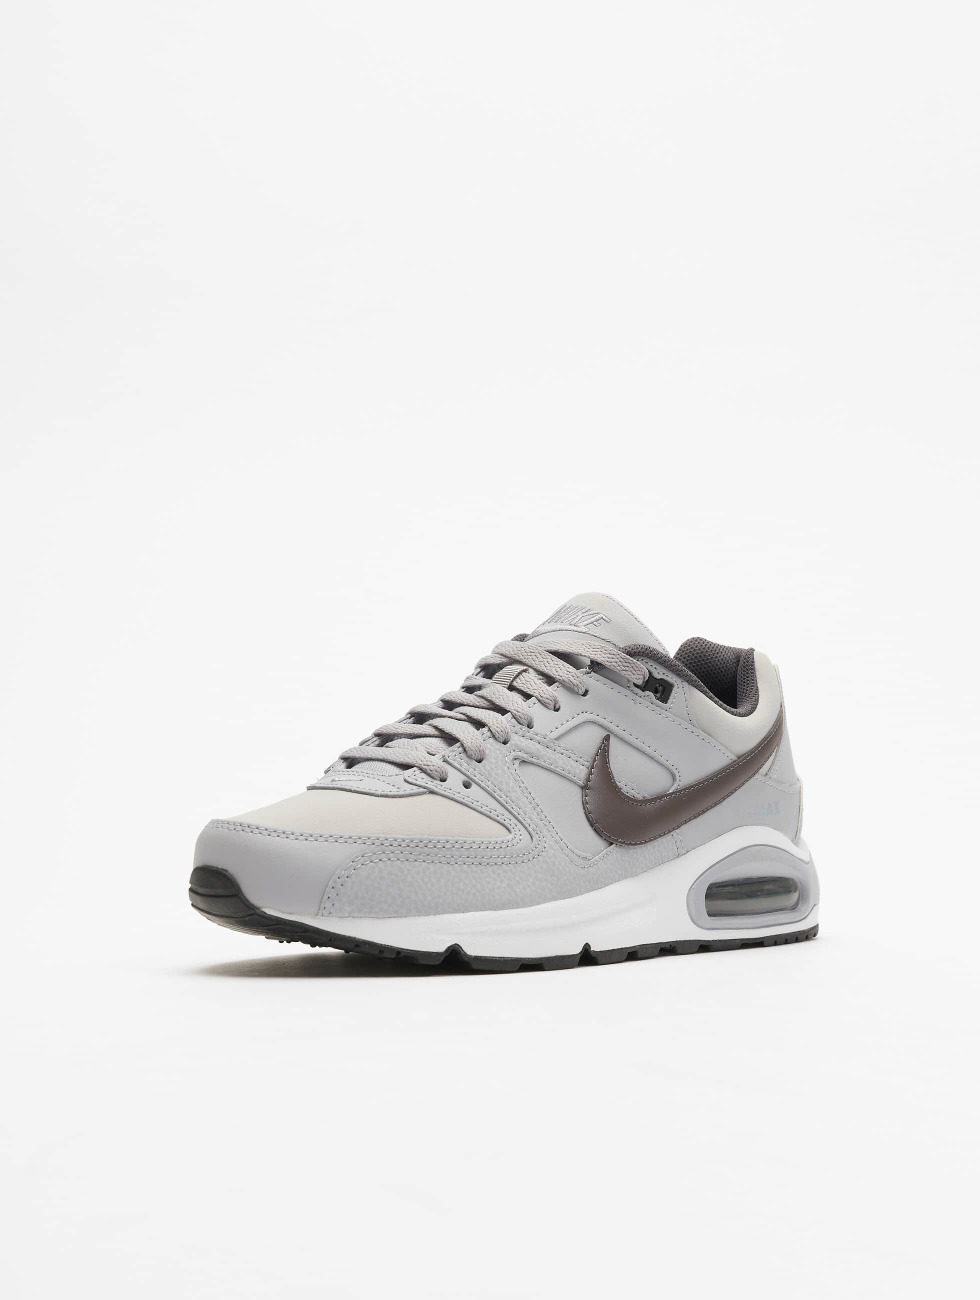 Nike schoen / sneaker Air Max Command Leather in grijs 256990 Releasedatums Goedkope Online 5JDbM